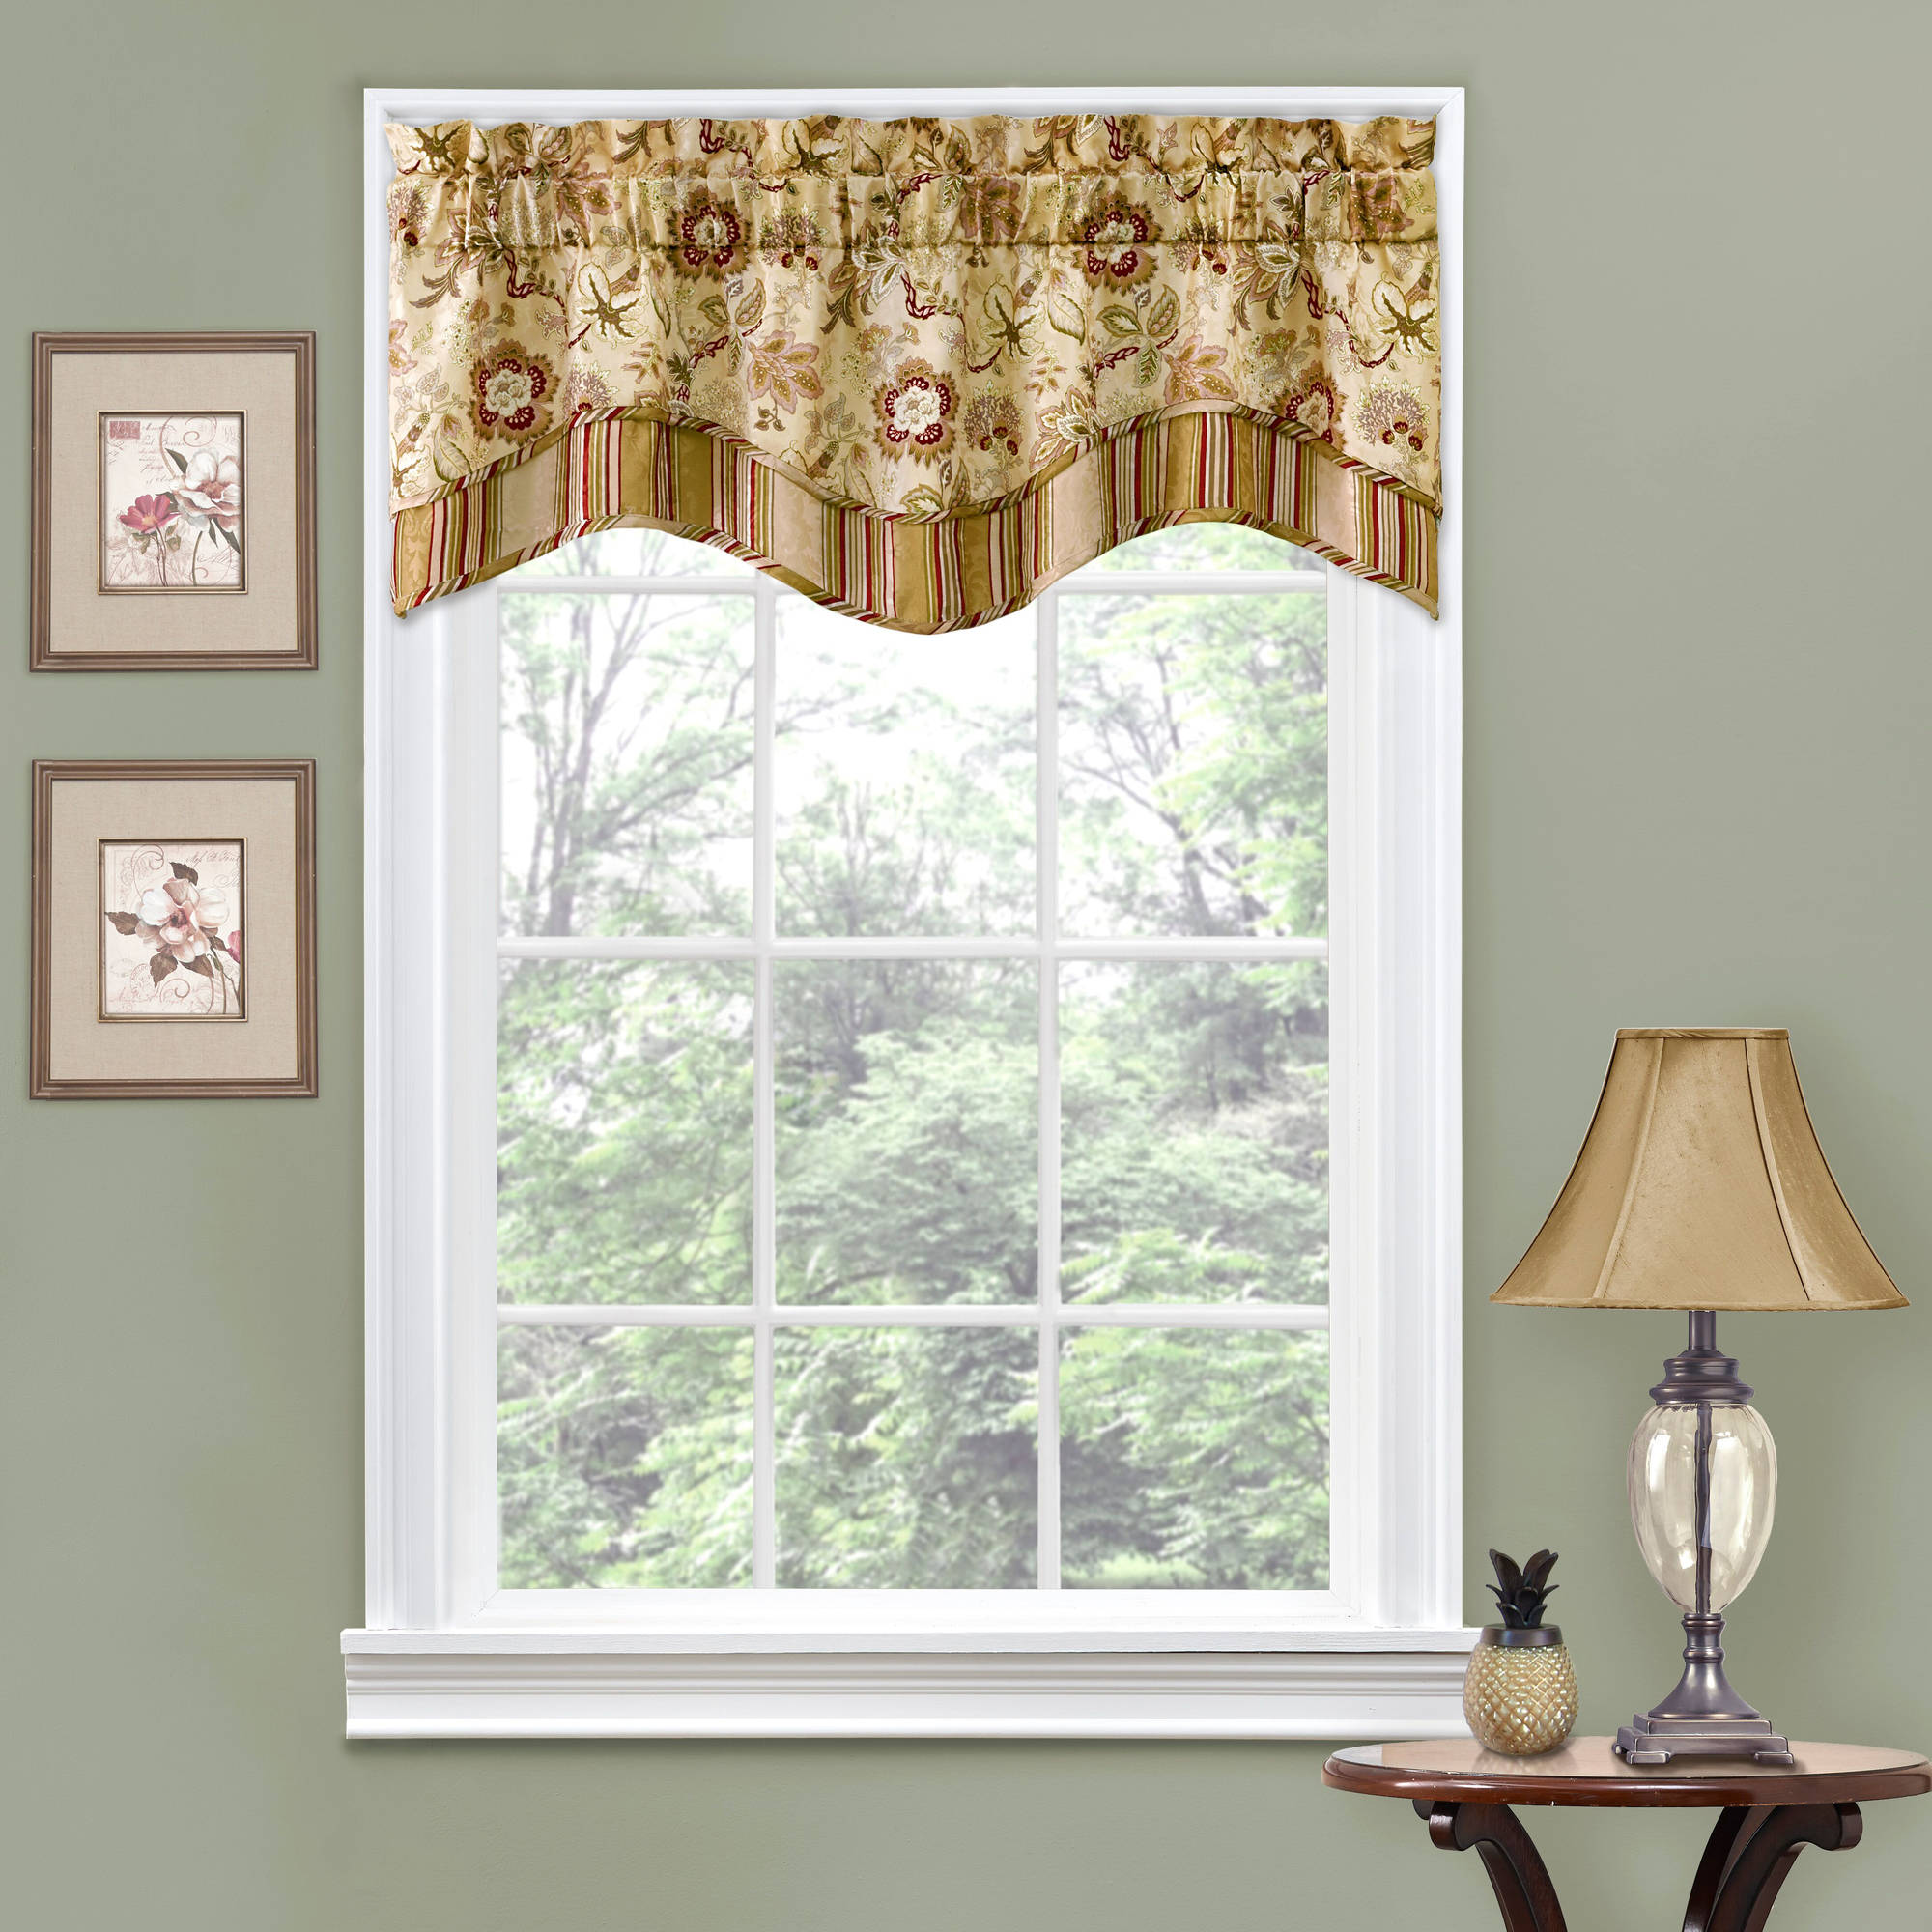 windows window treatments for main darkening joss curtain pdp valance valances reviews room bridgetown